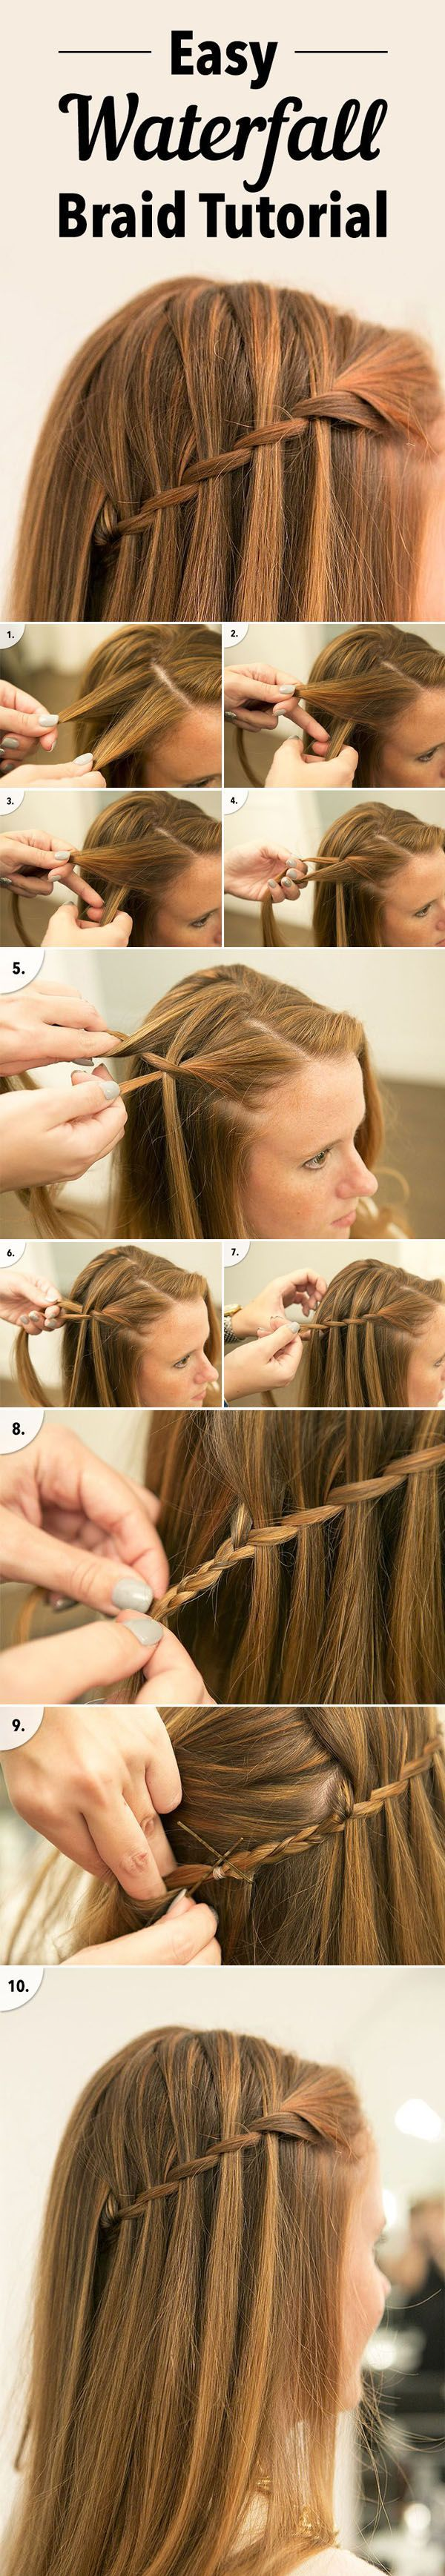 119 best DIY Hairstyles ♡ images on Pinterest